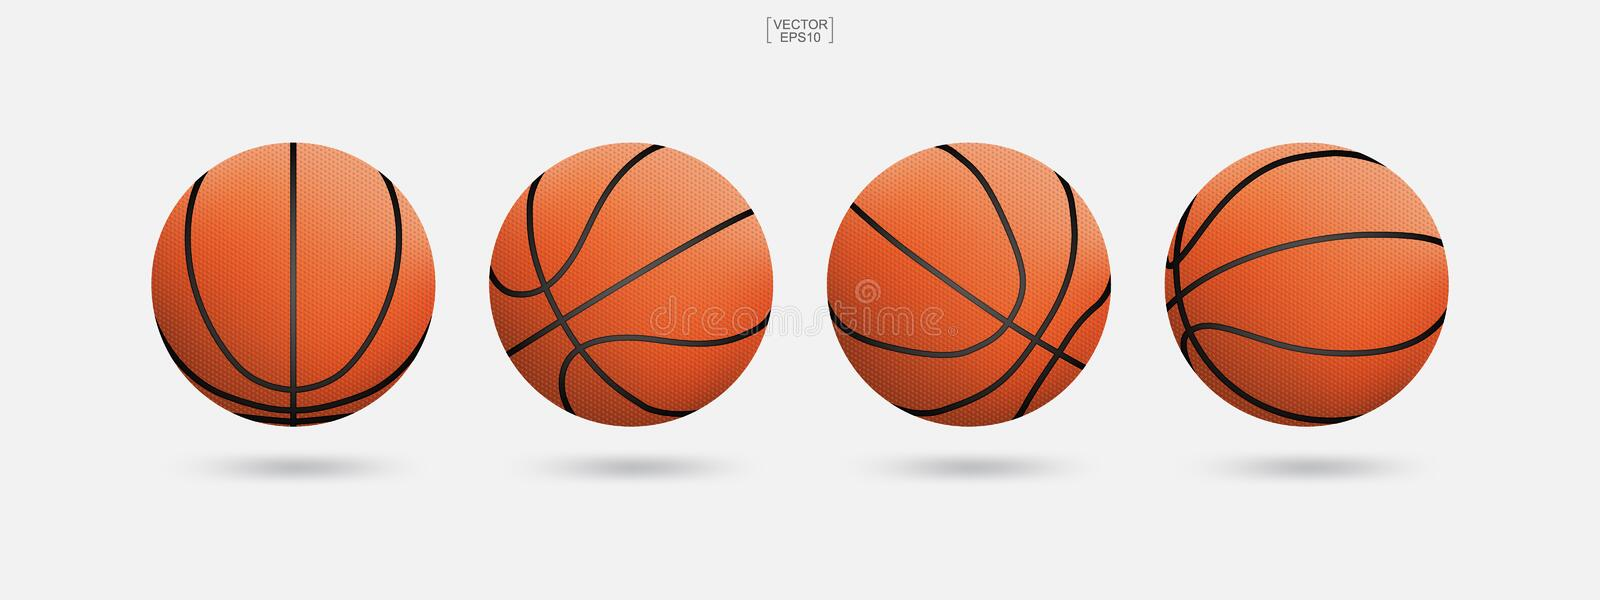 Basketball ball isolated on white background. Vector illustration. Set of basketball ball isolated on white background. Vector illustration royalty free illustration